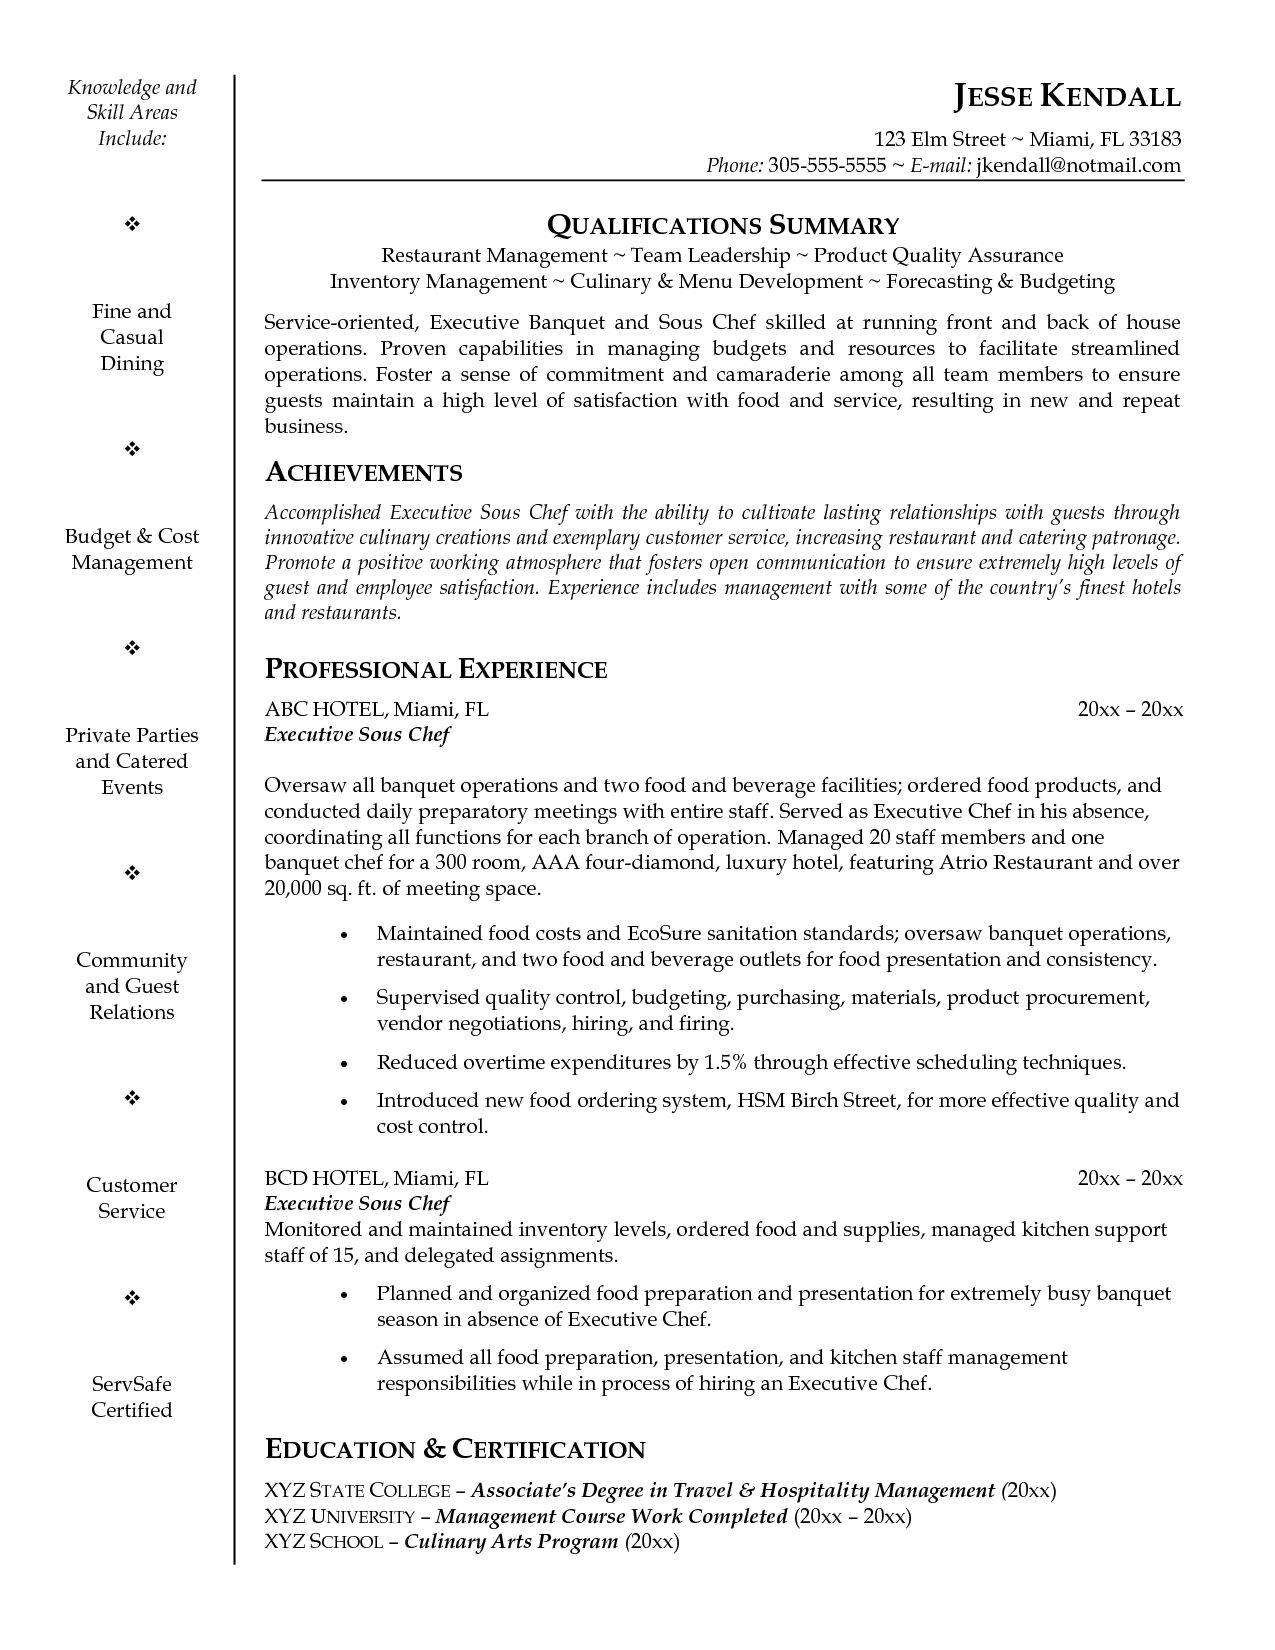 Chef Resume Glamorous Usajobs Online Resume Builder  Httpwwwjobresumewebsiteusajobs